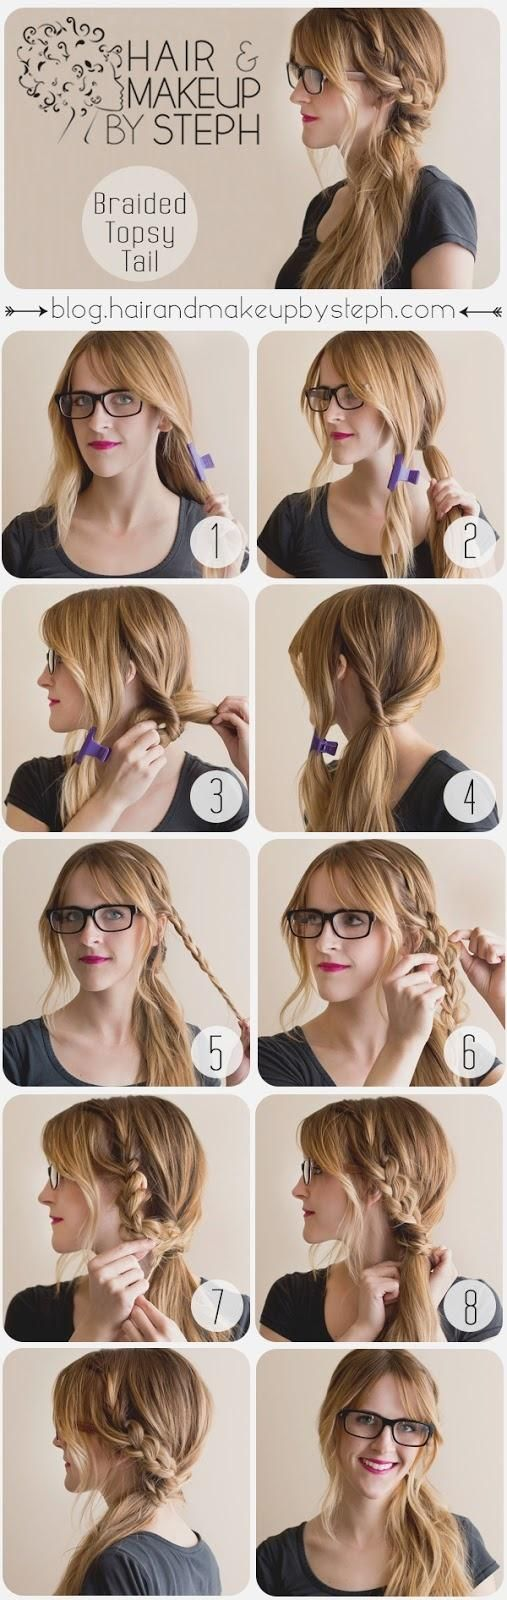 cute hair idea